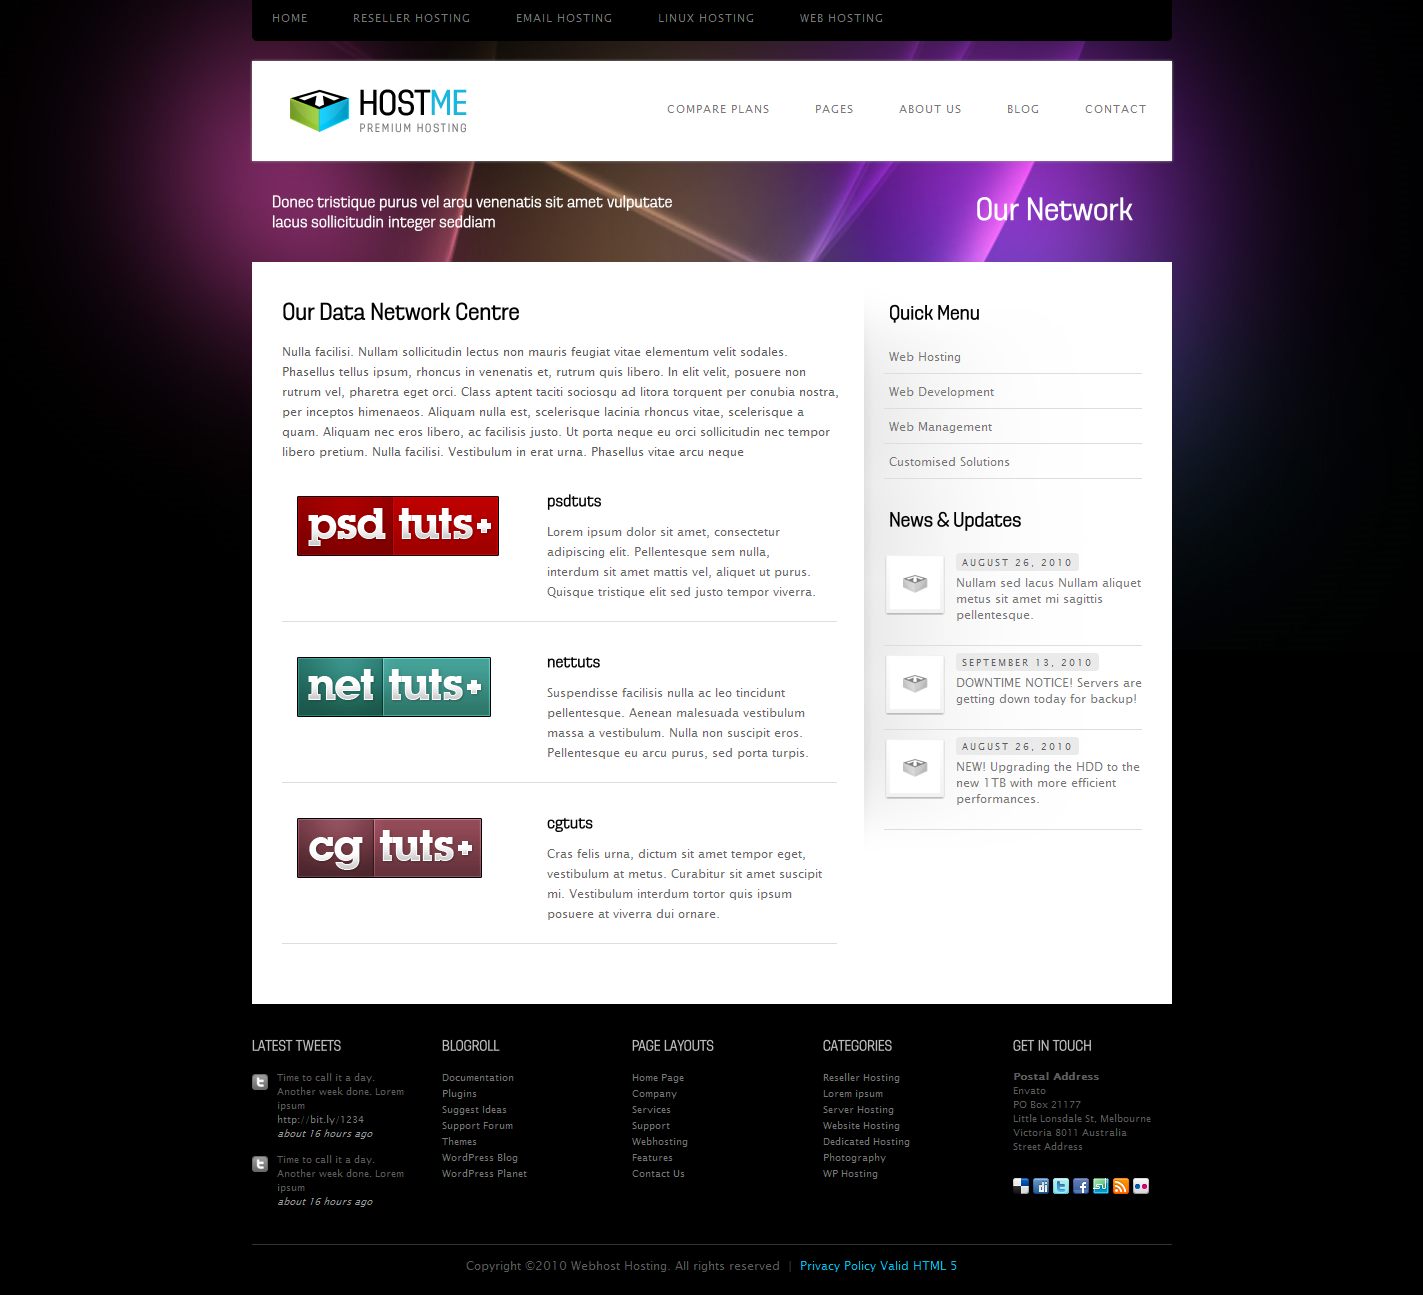 Hostme - Premium Hosting & Business Template